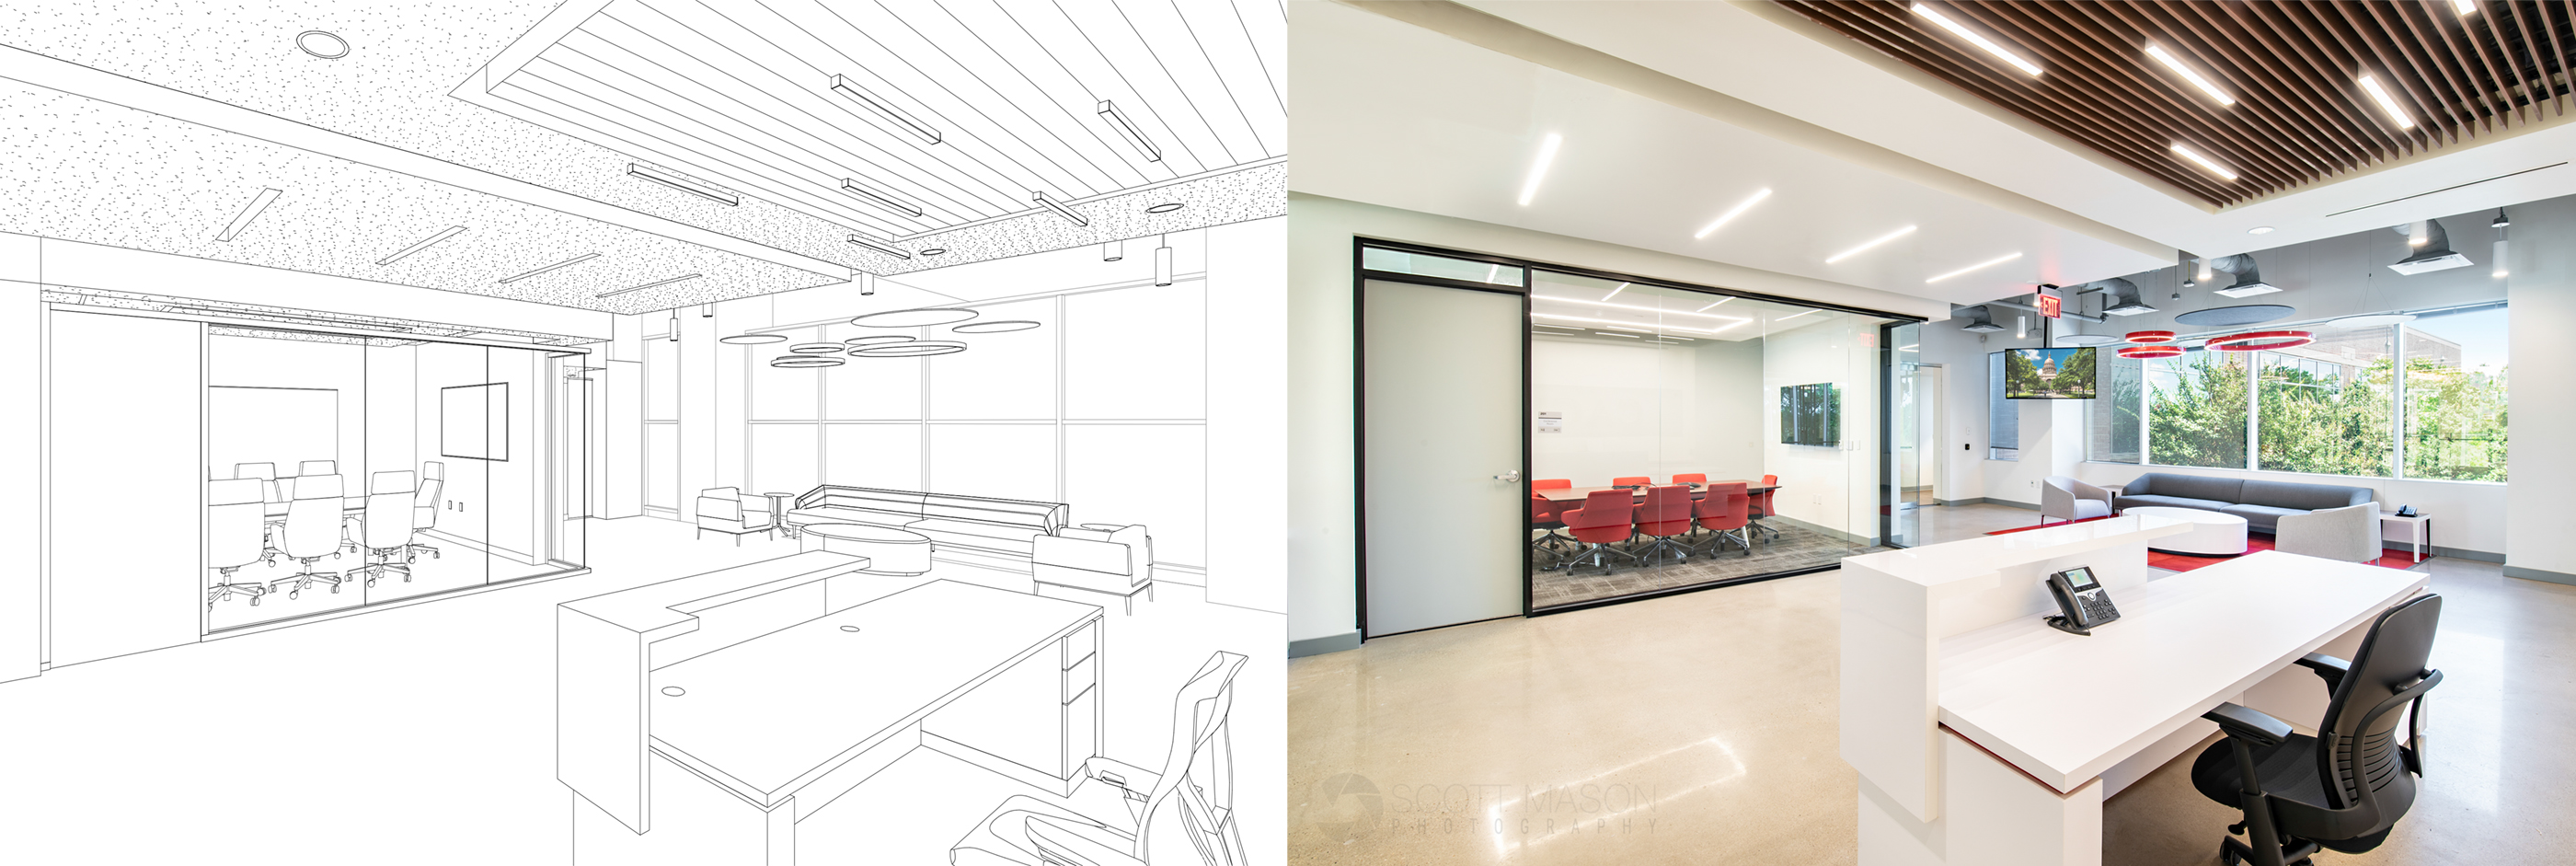 side-by-side of an architectural rendering and interior photo of an office lobby